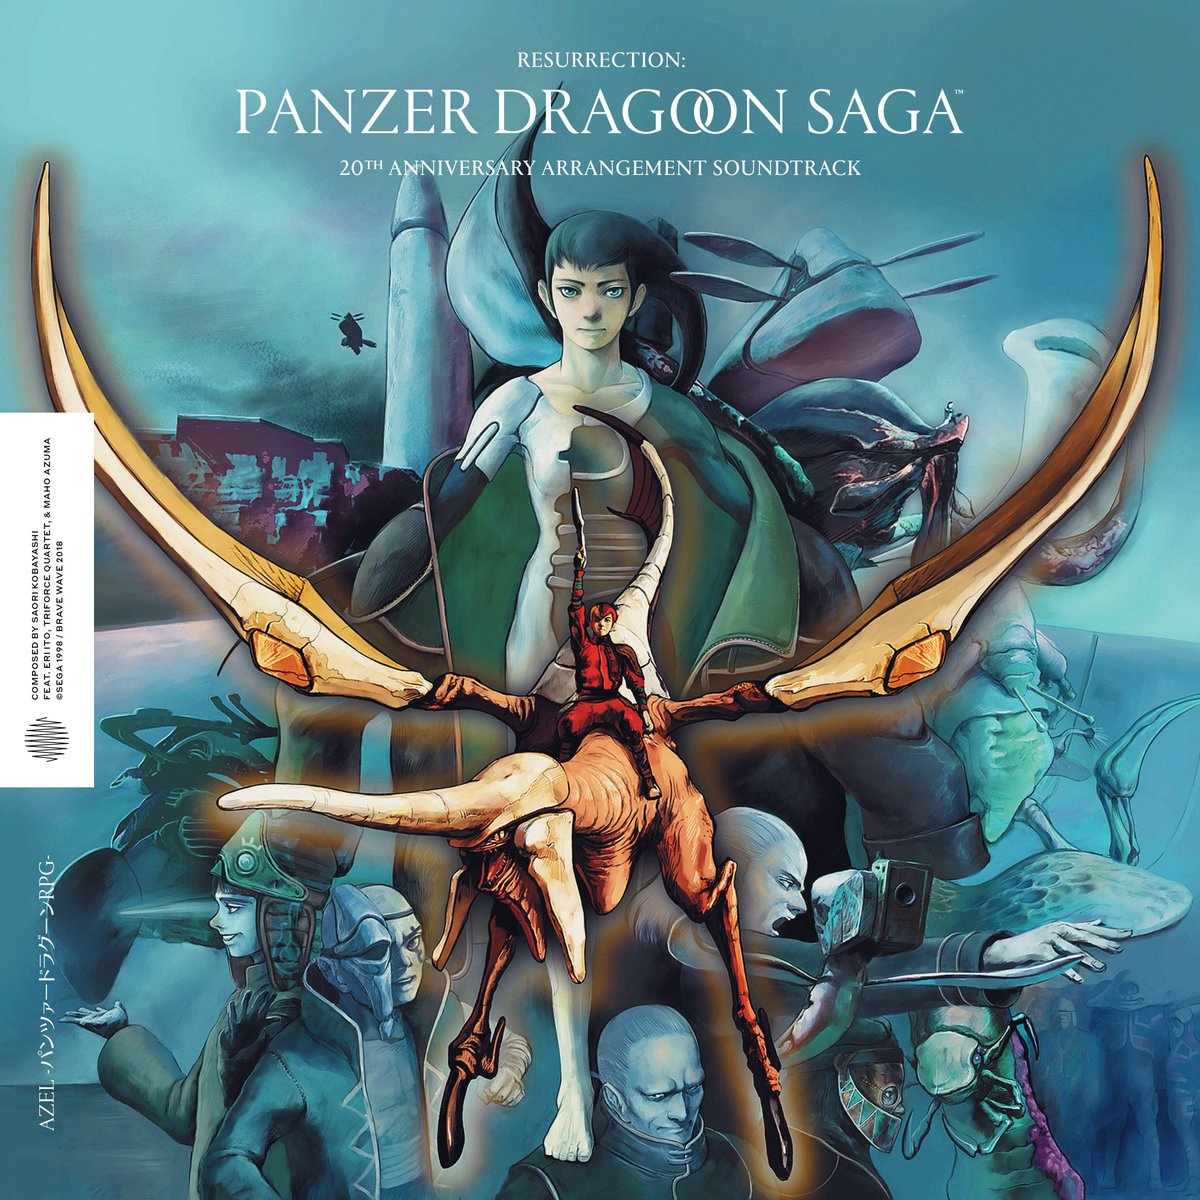 Resurrection: Panzer Dragoon Saga - Front